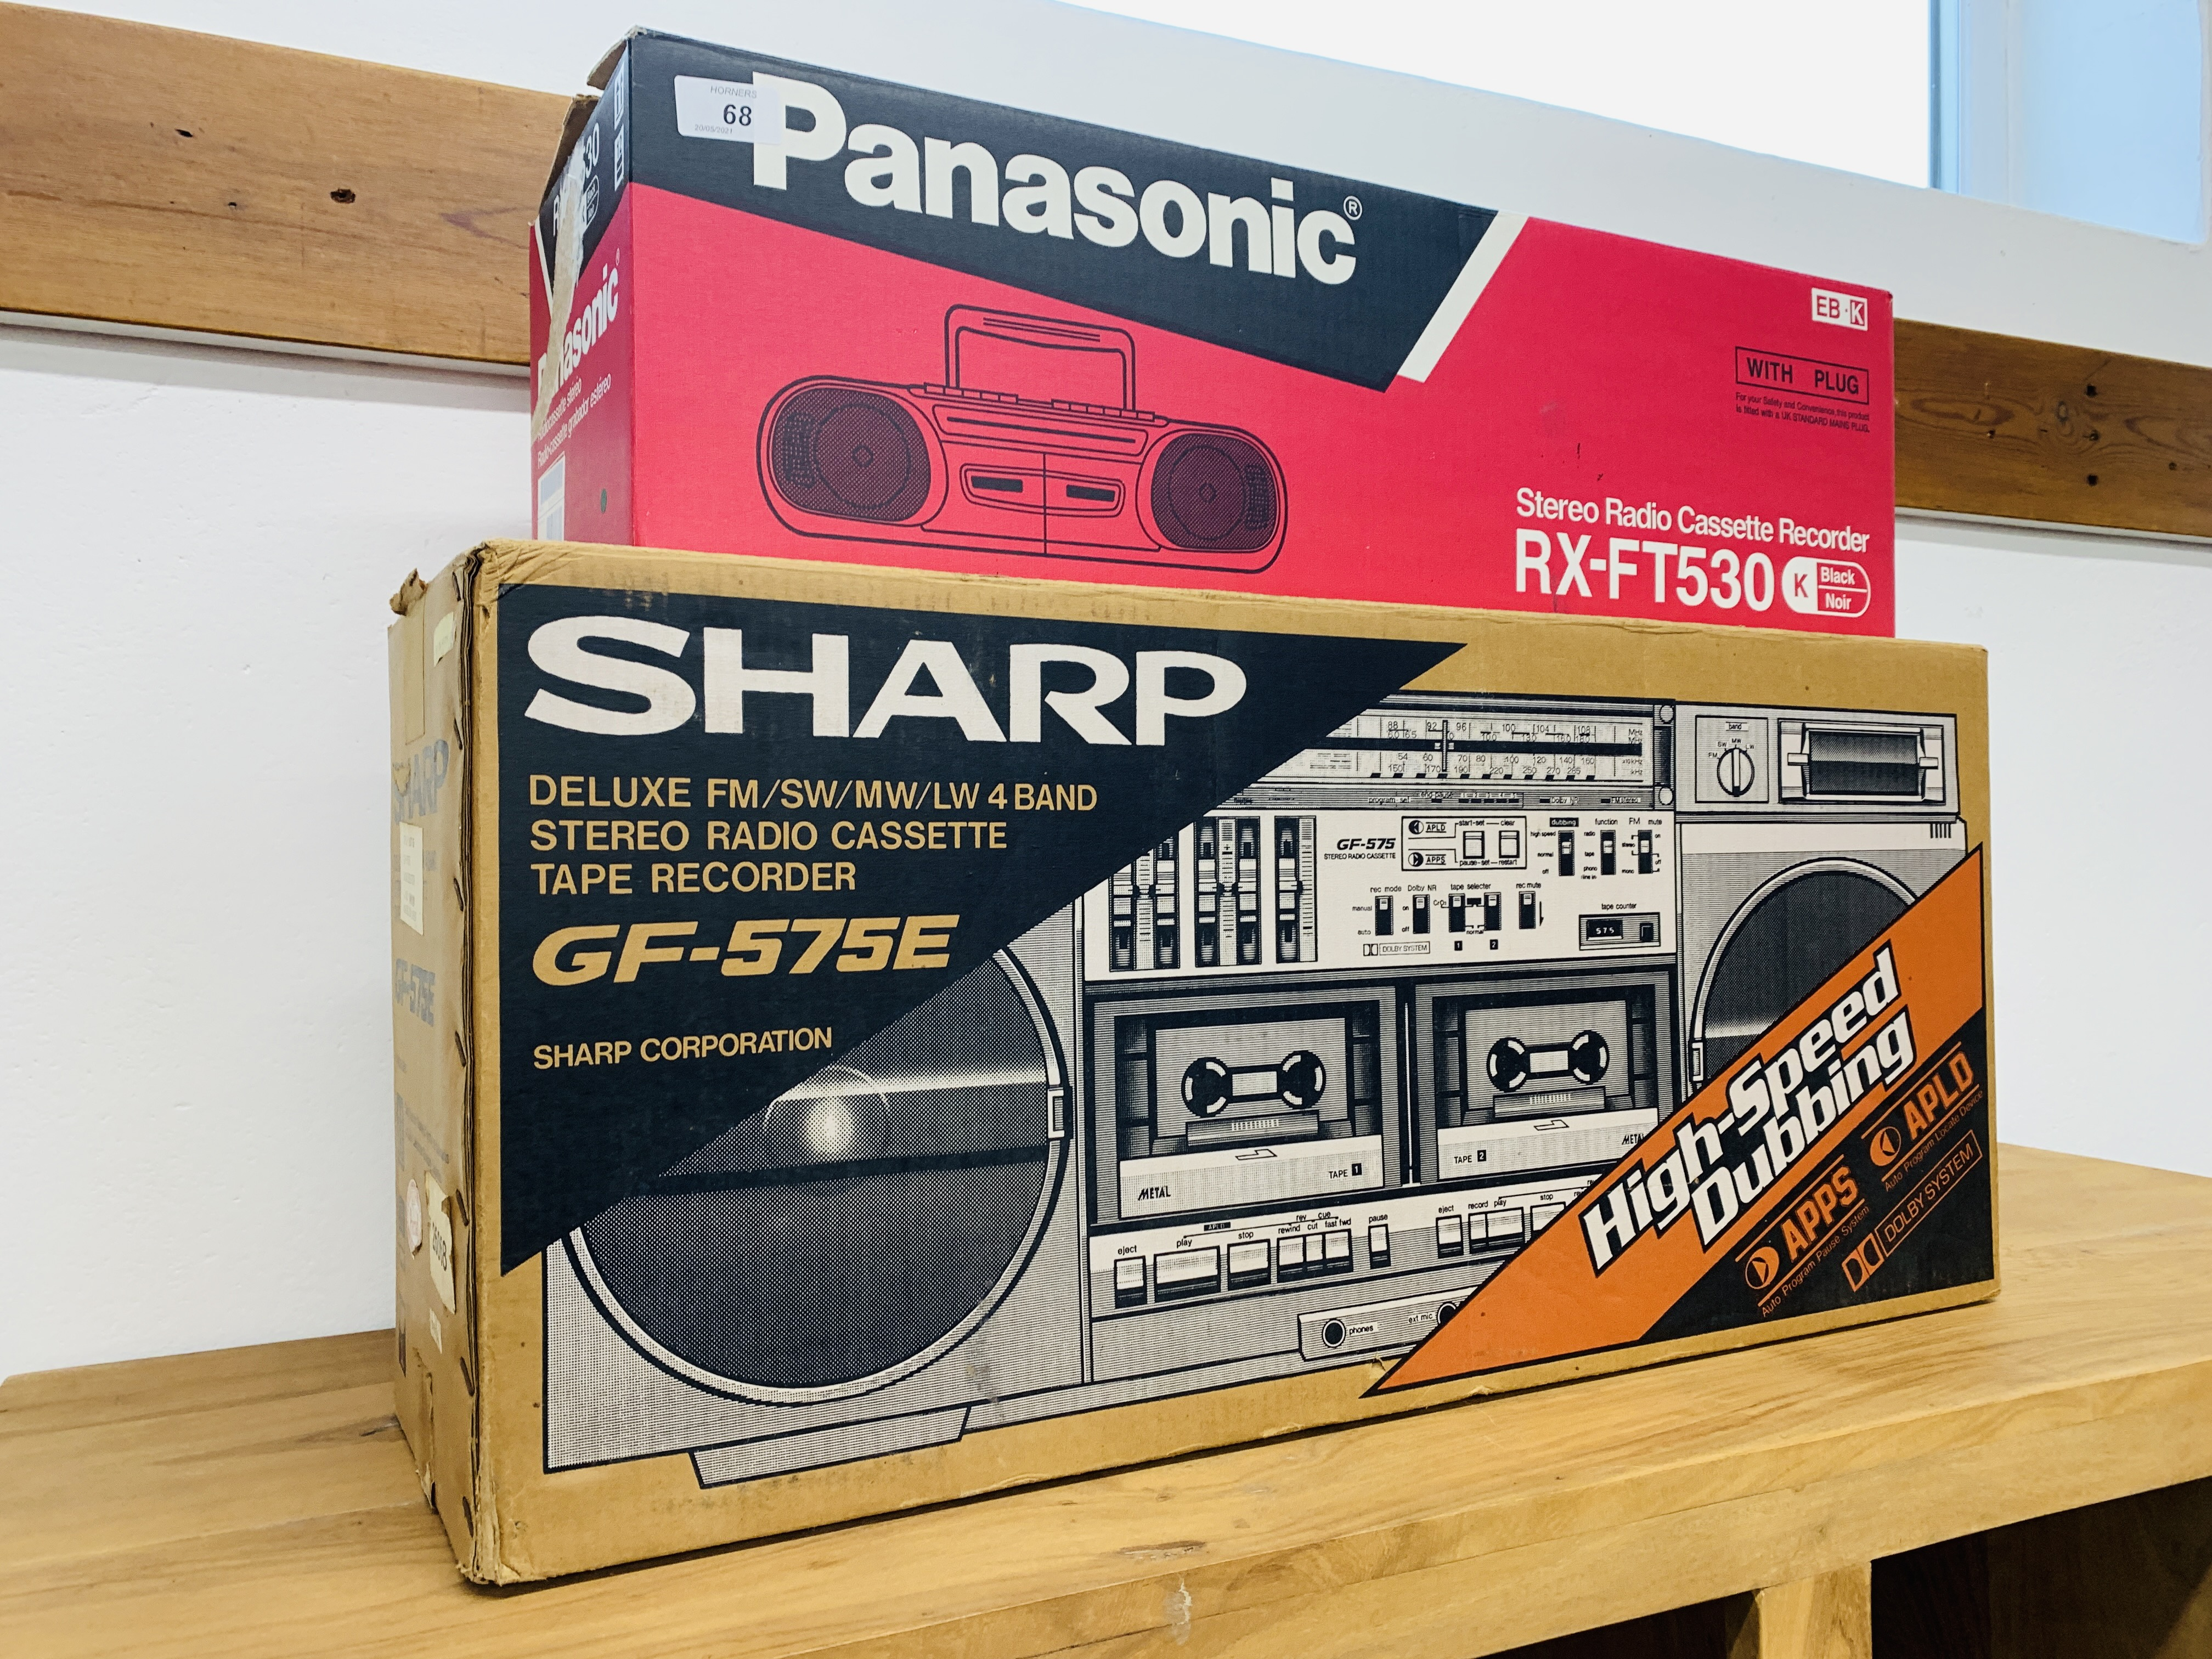 SHARP DELUXE FH / SW / MW / LW 4 BAND STEREO RADIO CASSETTE TAPE RECORDER GF- 575E WITH ORIGINAL